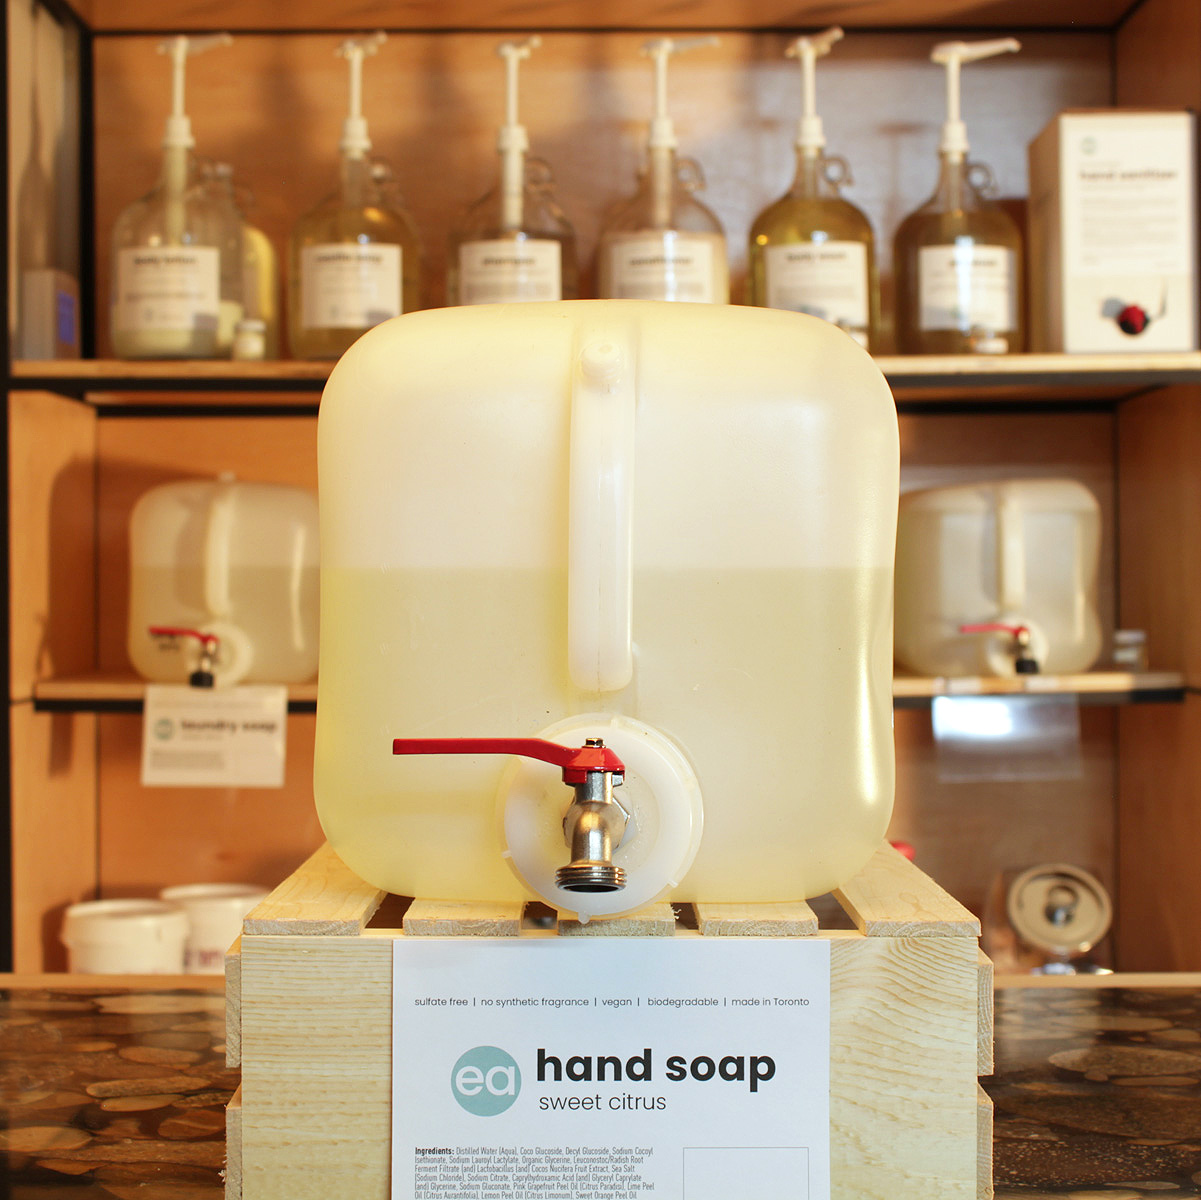 refill liquid hand soap - Toronto - Pollocks Home Hardware - eco + amour